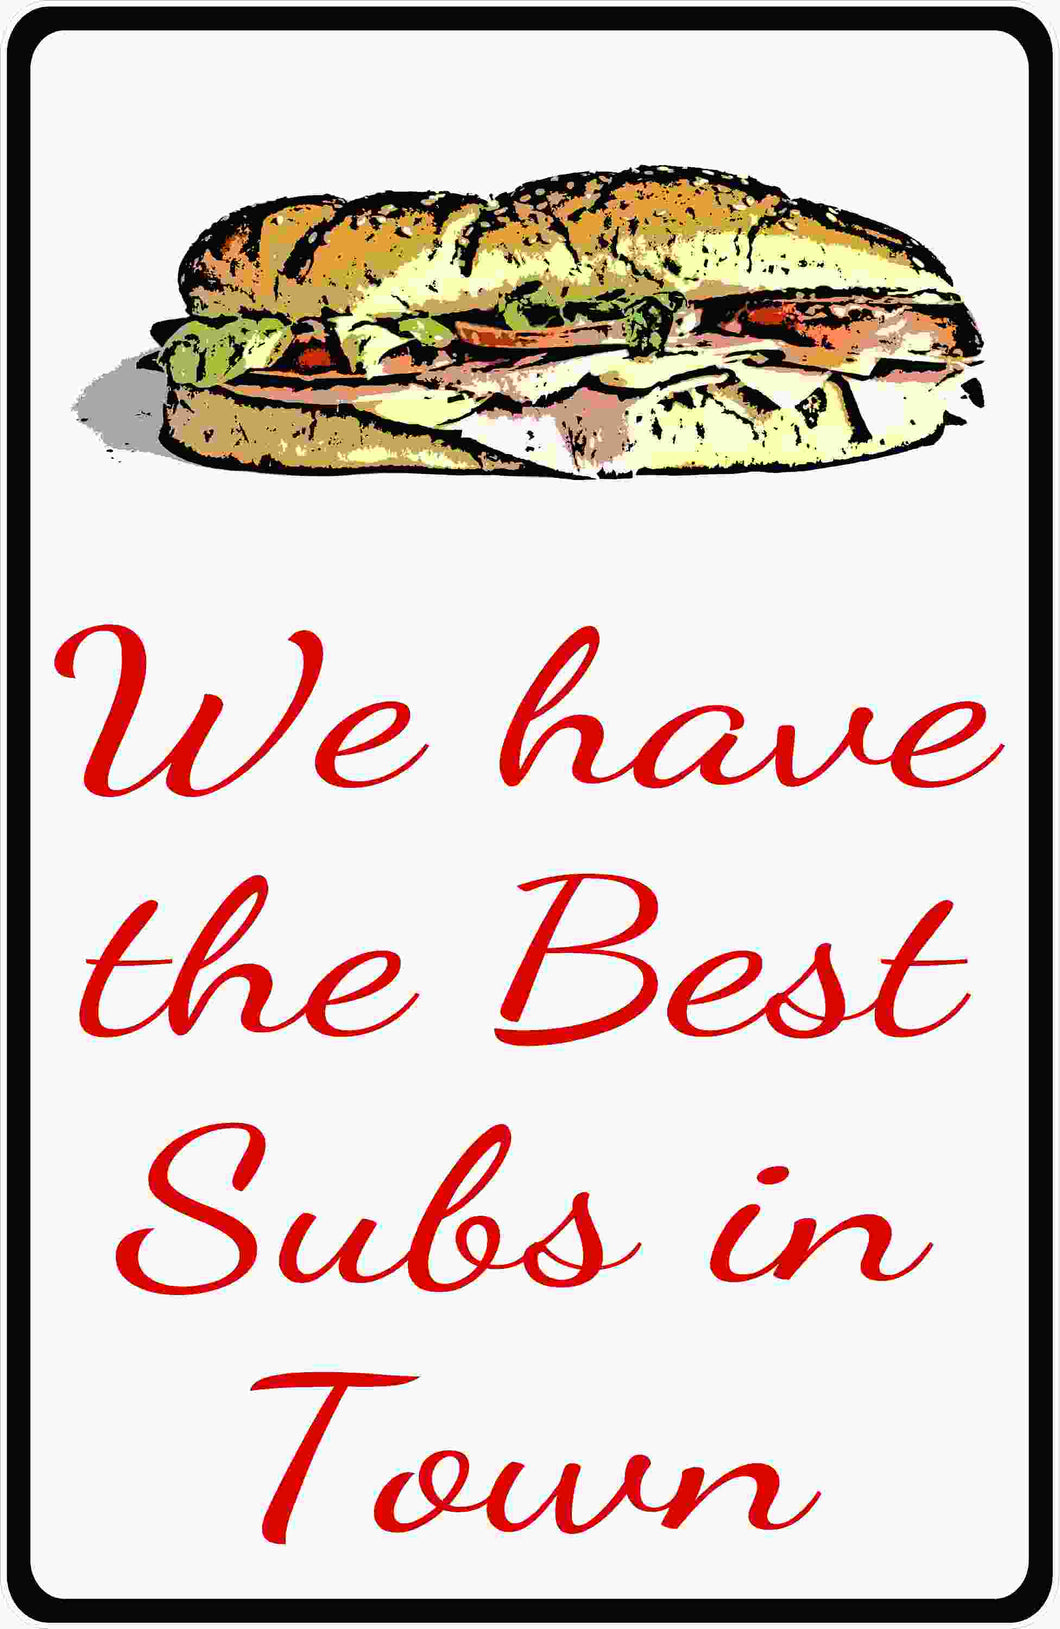 Deli Submarine Sandwich Menu Sign